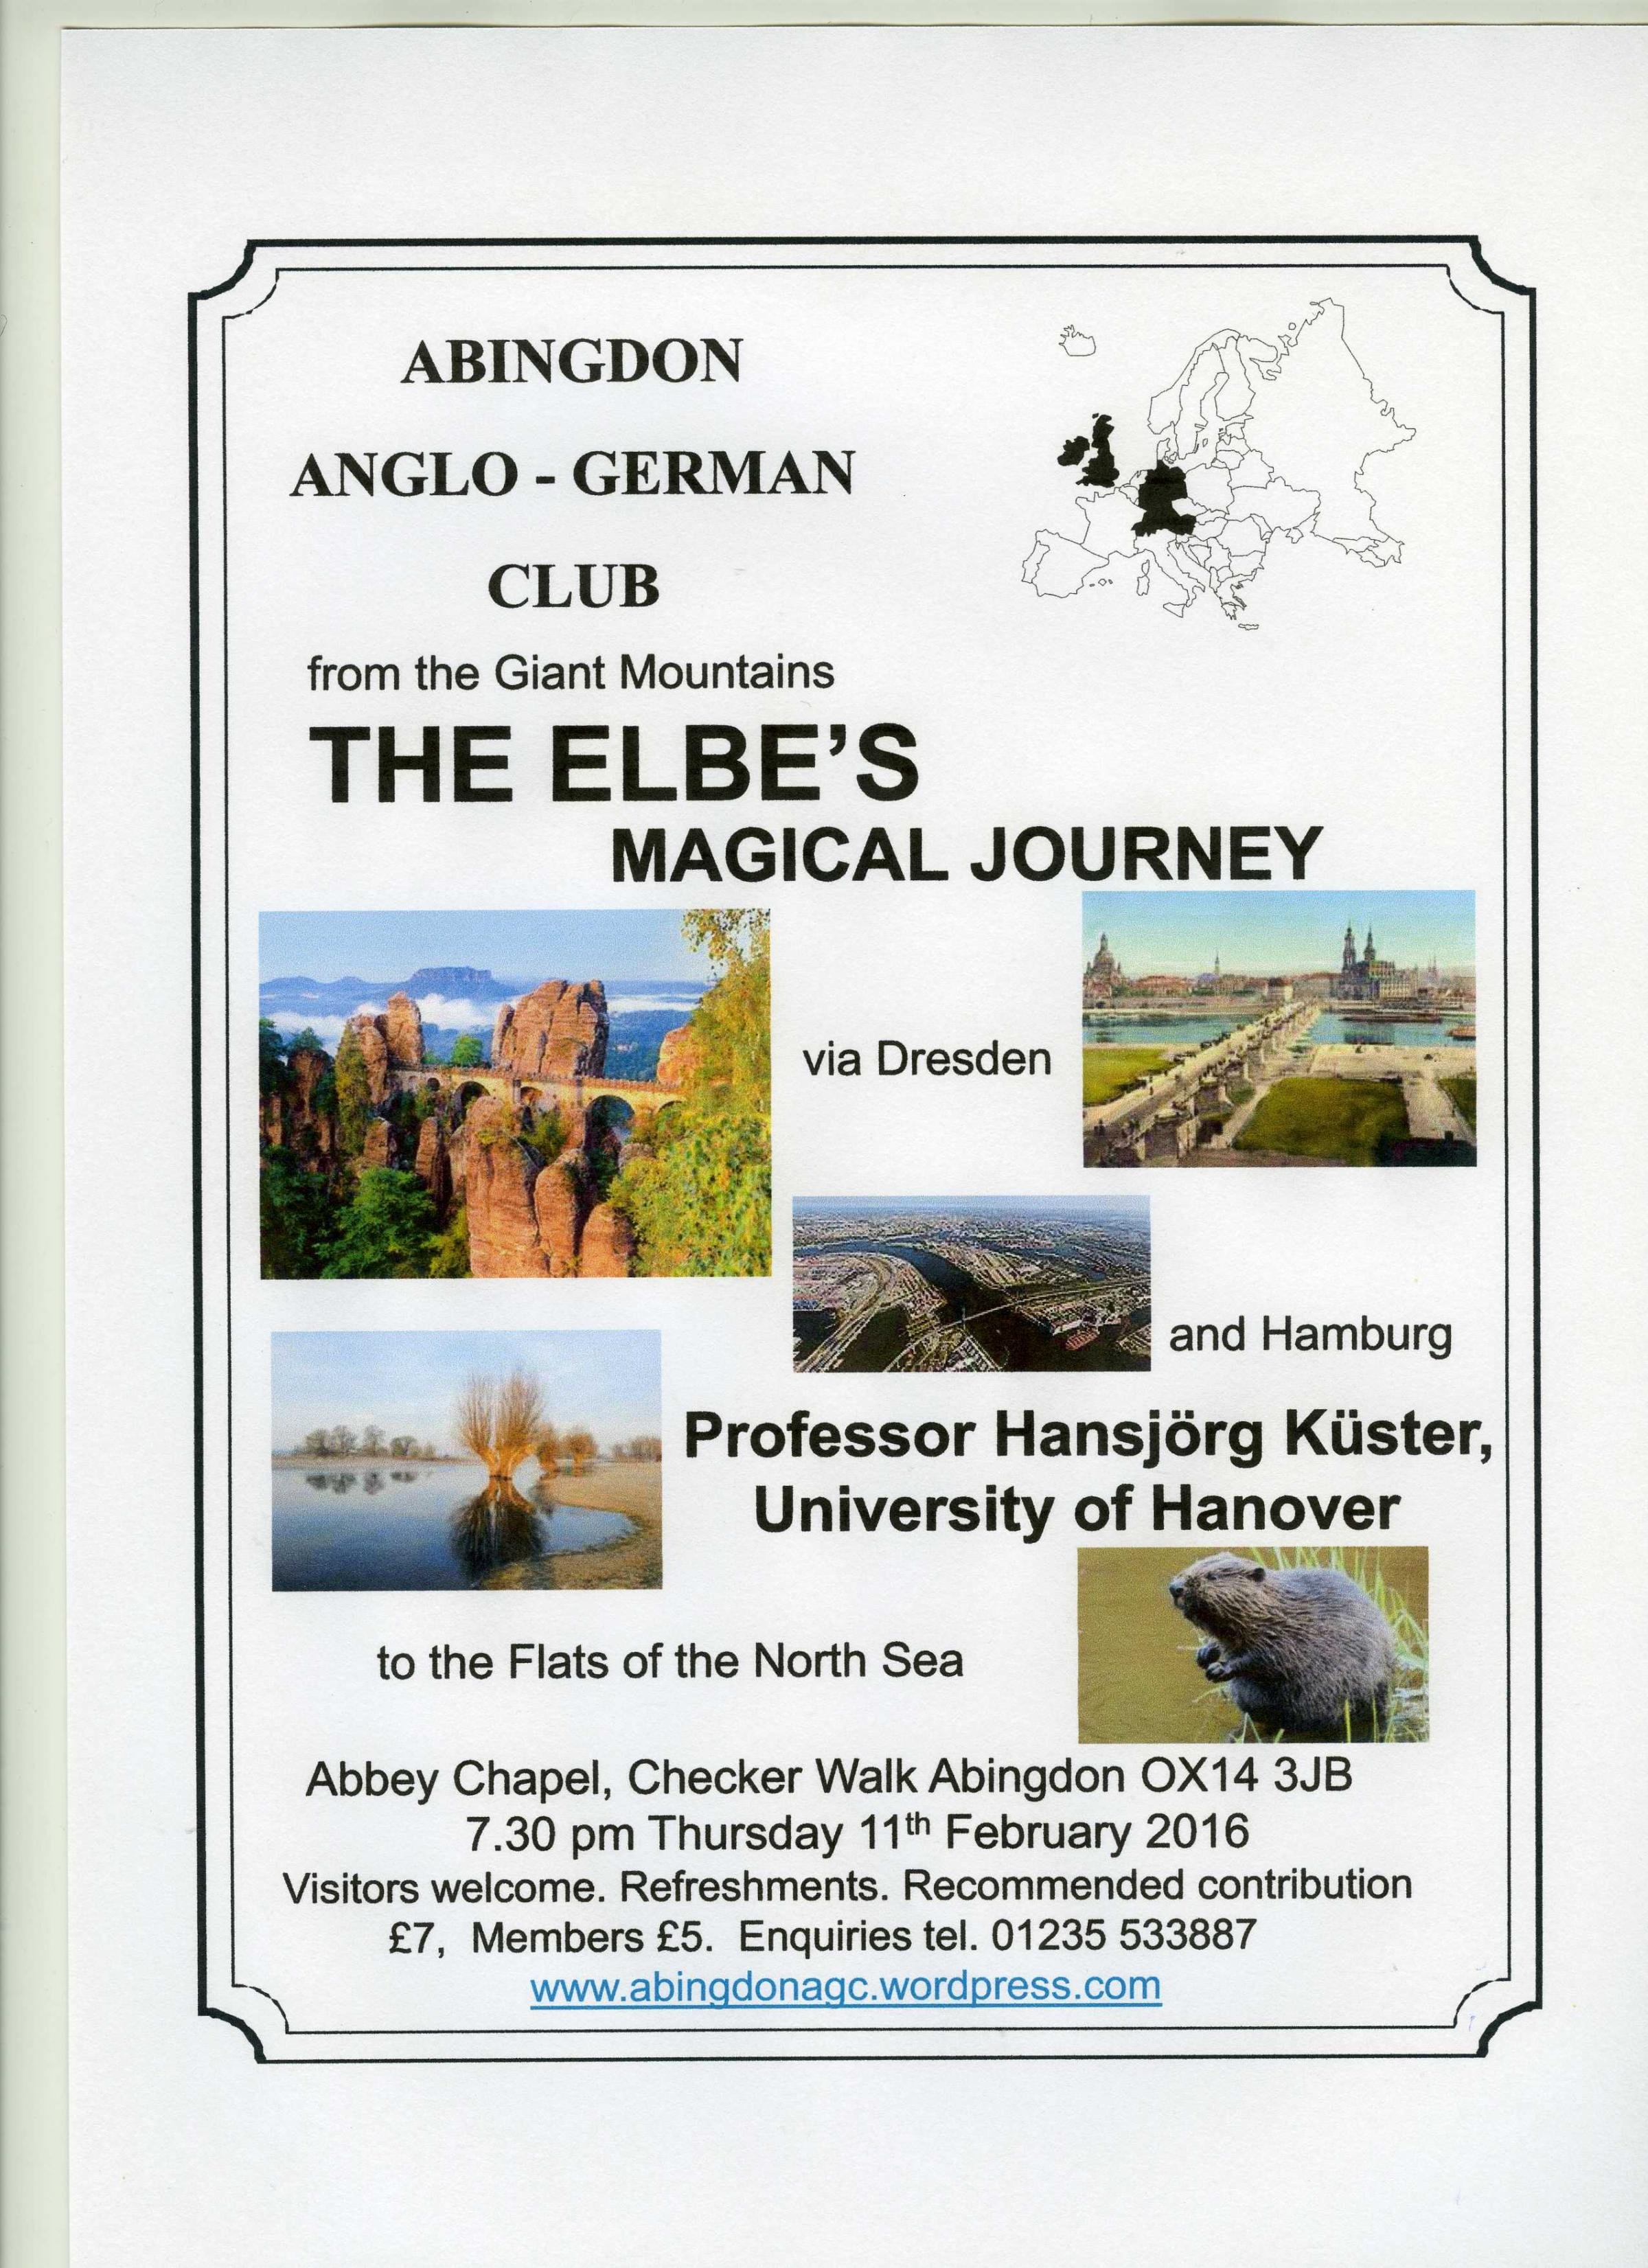 THE ELBE'S MAGICAL JOURNEY